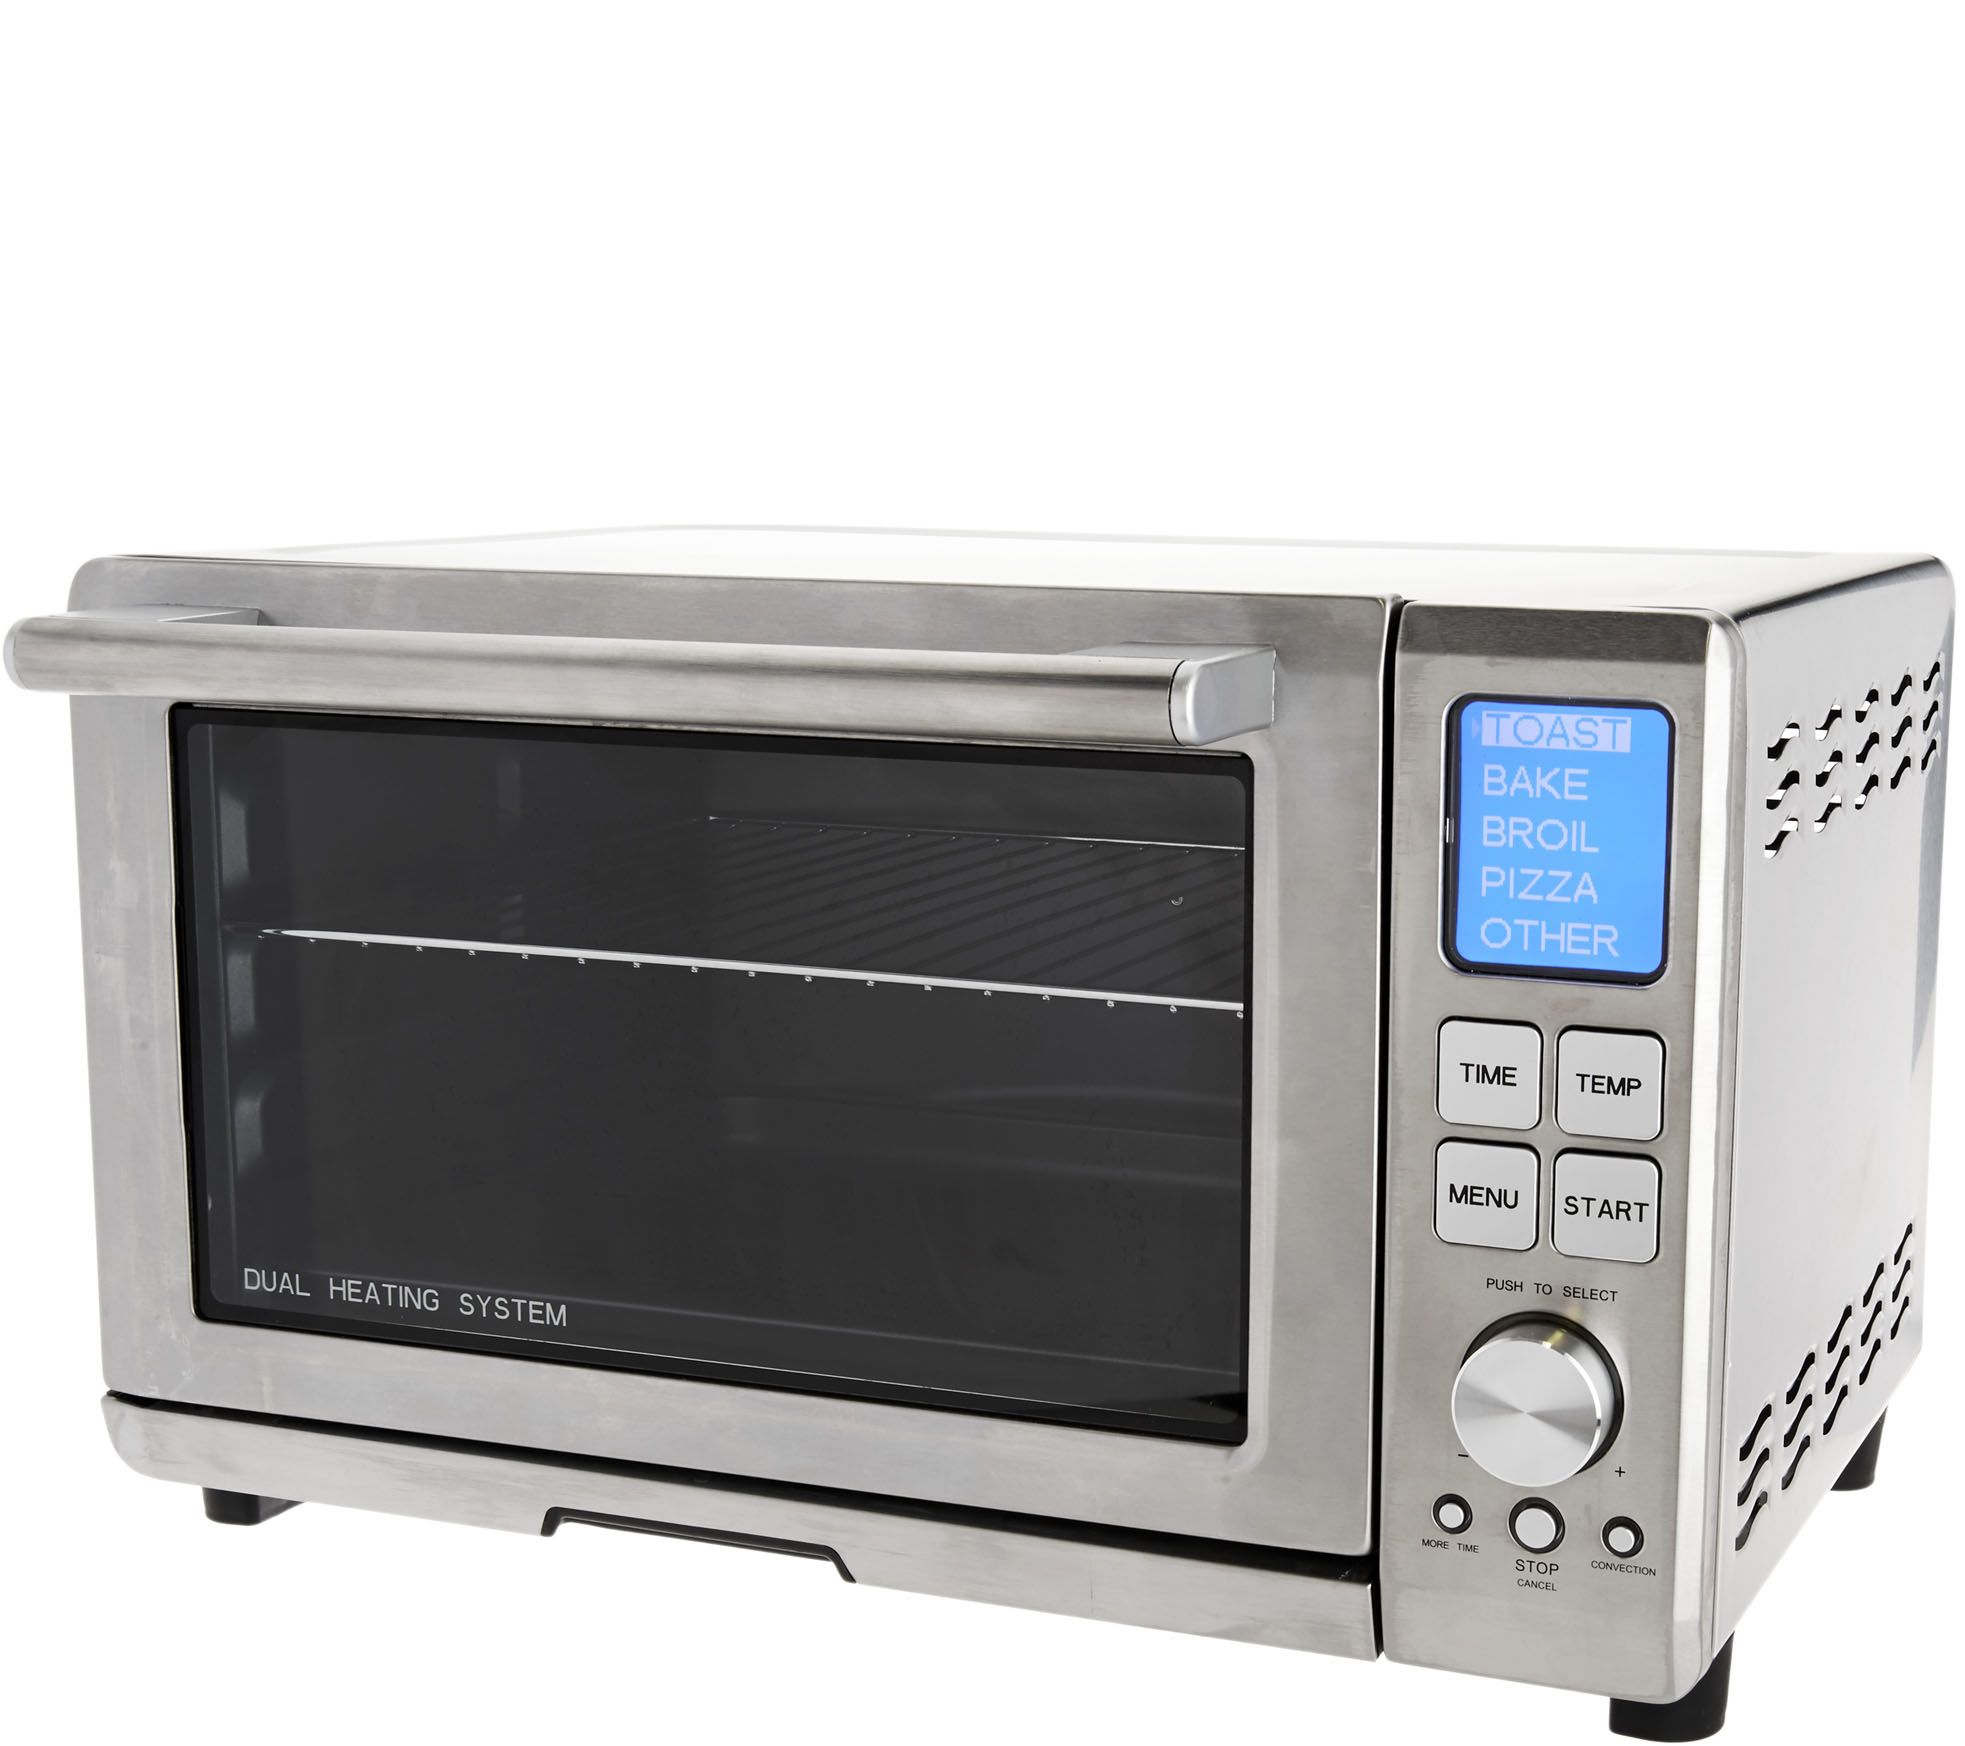 cooku0027s essentials chef series digital convection oven page 1 u2014 qvccom - Convection Ovens